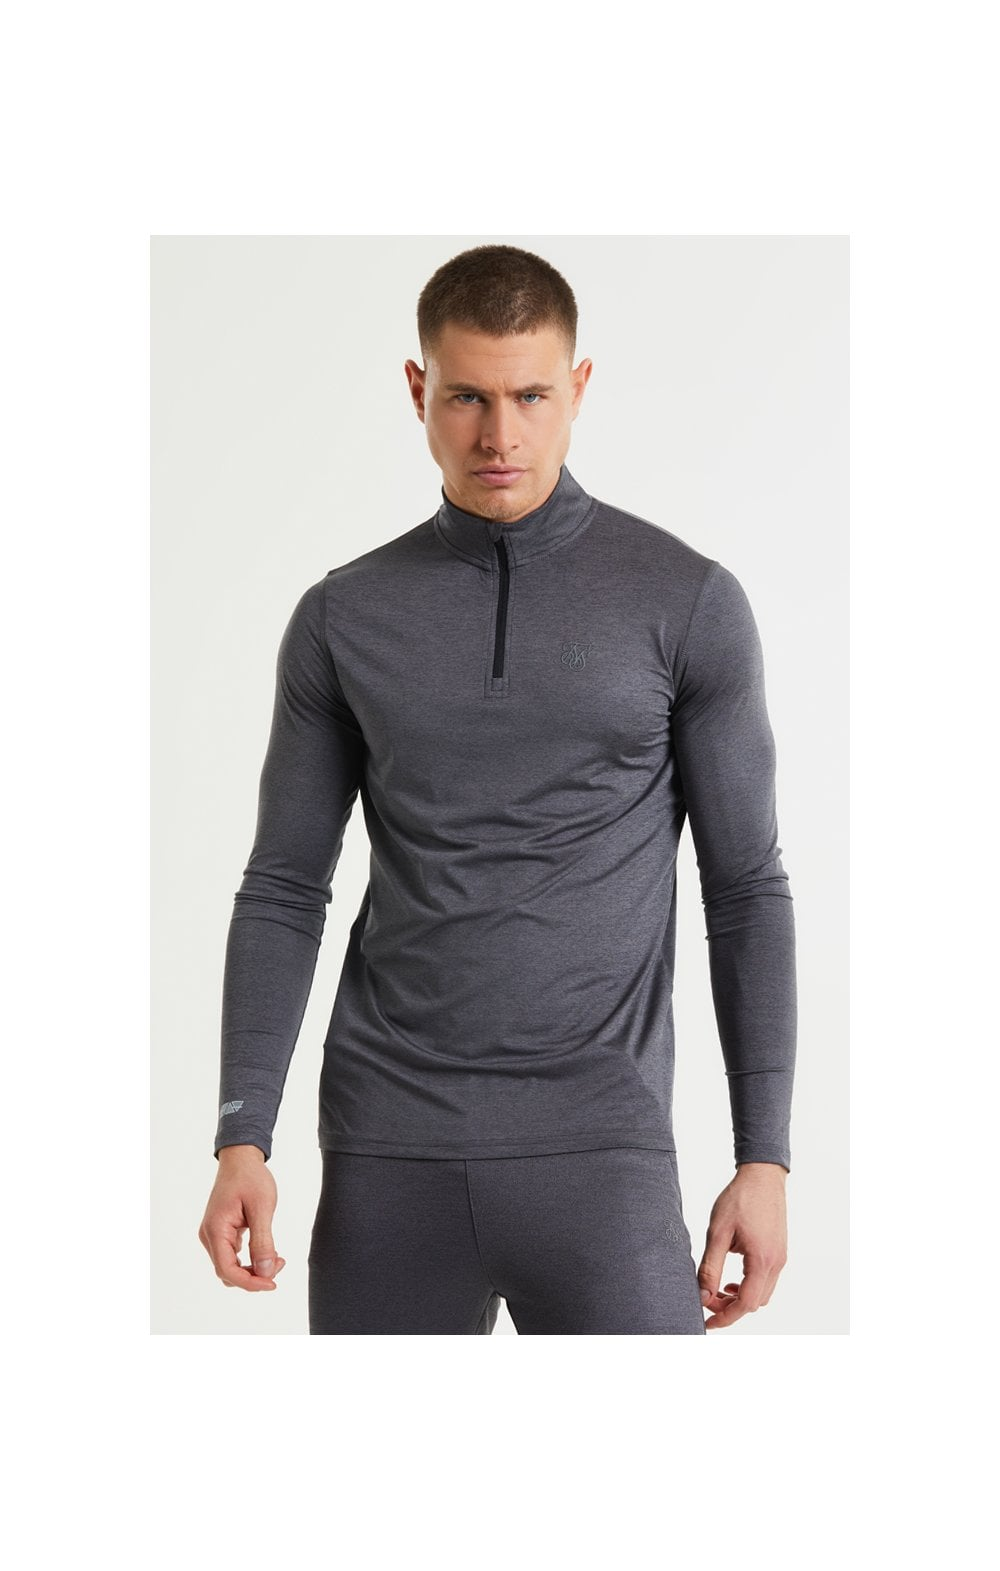 Load image into Gallery viewer, SikSilk Pressure Zip Funnel Neck - Charcoal Marl (1)